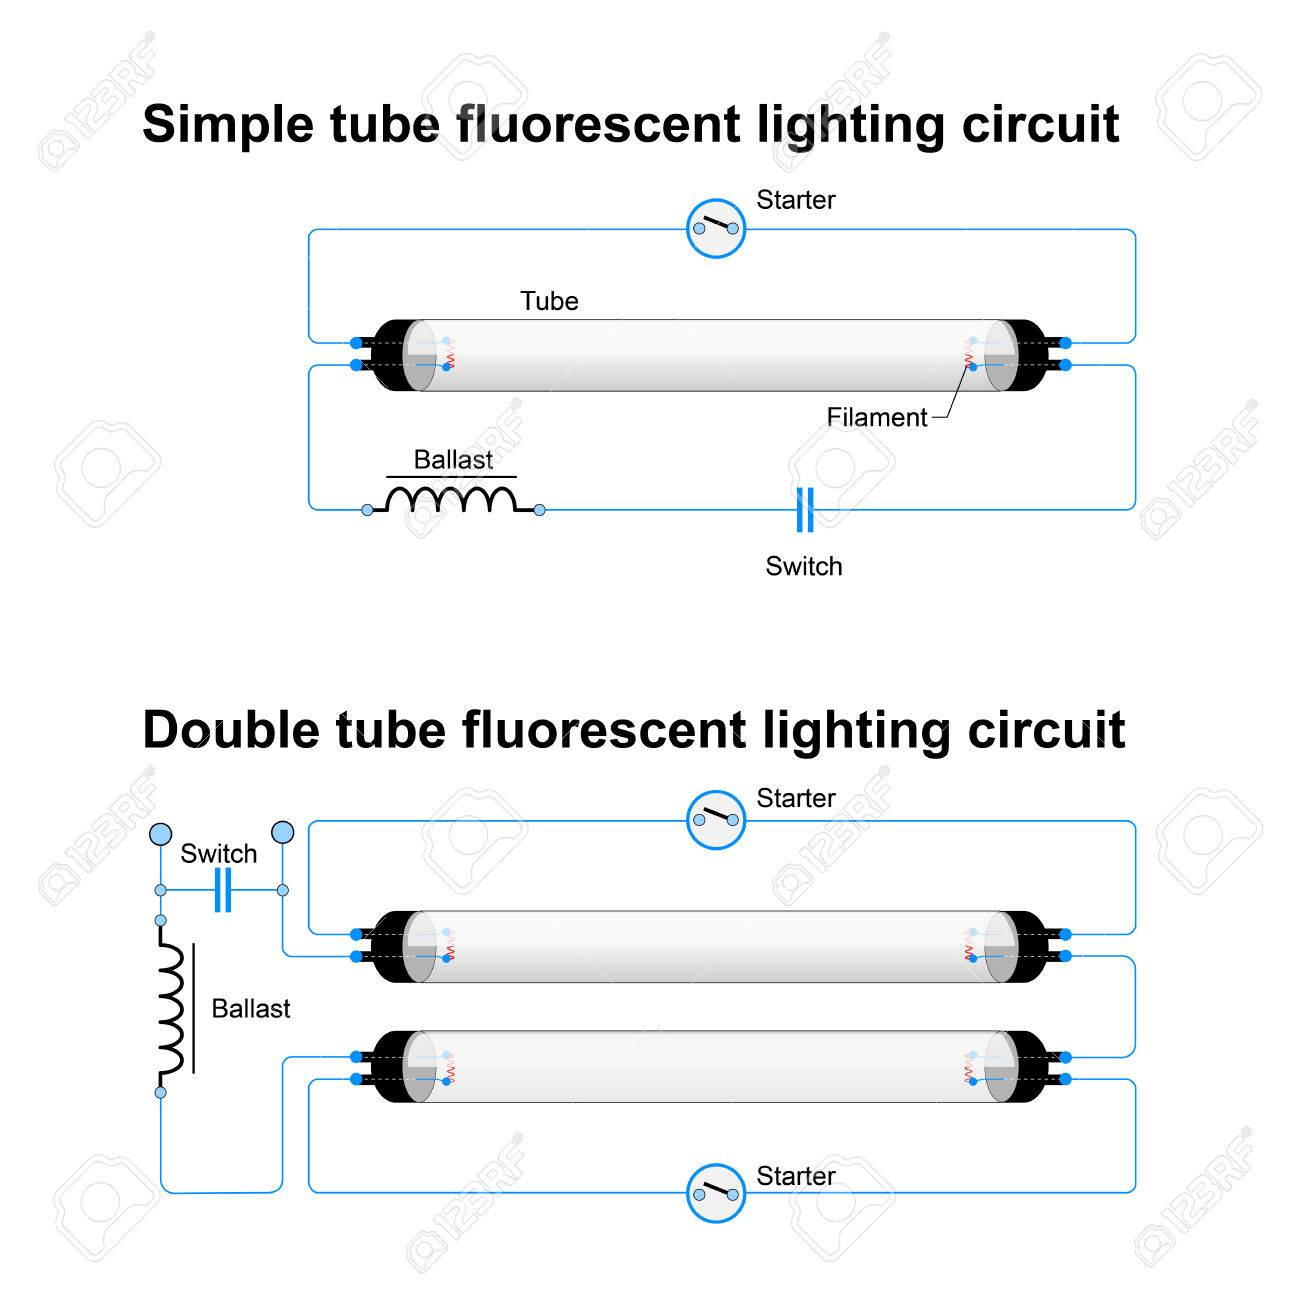 Wiring Diagram For Fluorescent Lights - Wiring Diagram Schematics on lithonia lighting wiring diagram, fluorescent table lamp wiring diagram, 2 ballast wiring diagram,